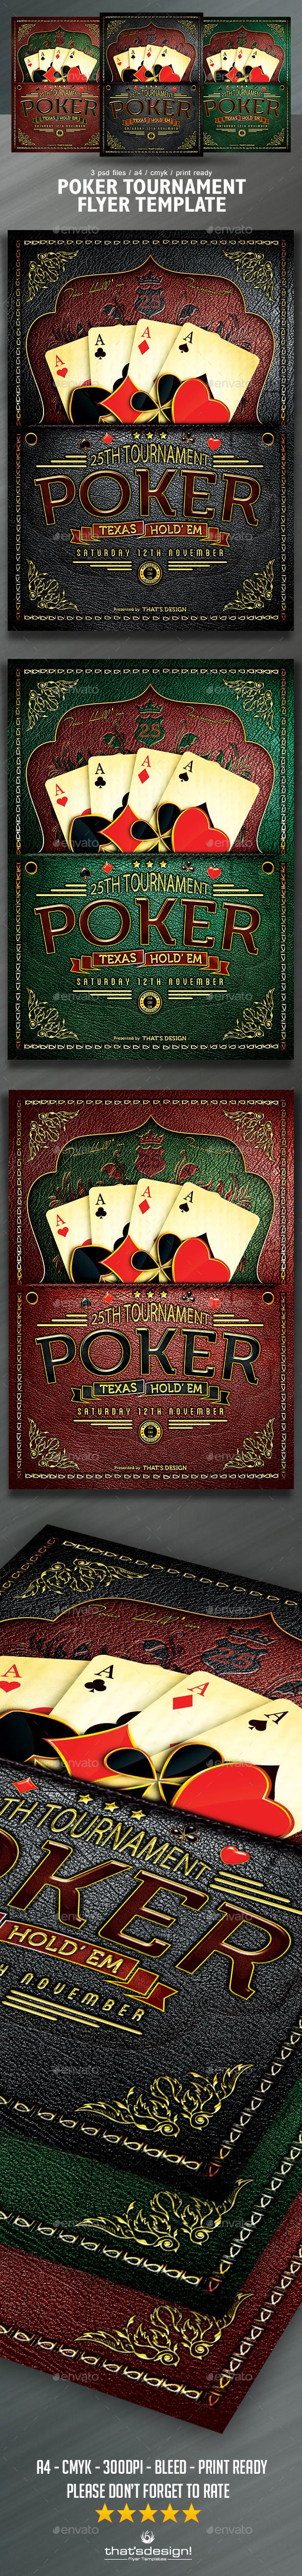 Poker Tournament Flyer Template  #flyer #gamble #gambling party • Available here → http://graphicriver.net/item/poker-tournament-flyer-template/6839931?s_rank=121&ref=pxcr